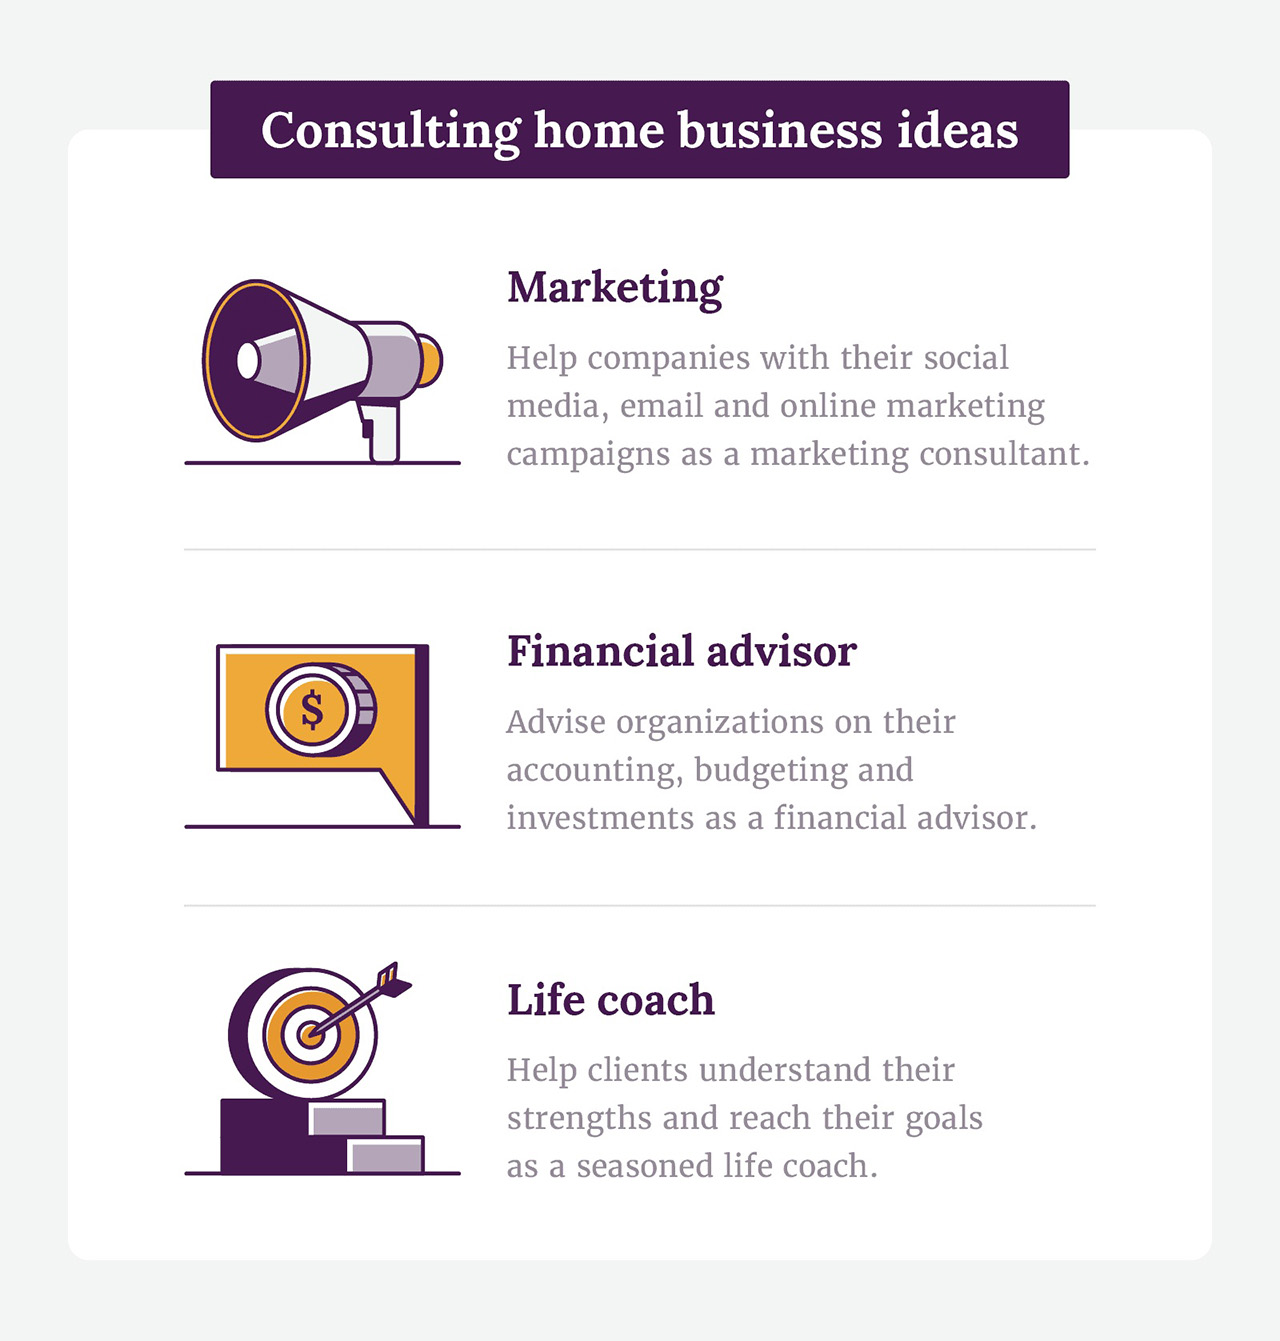 Consulting home business ideas